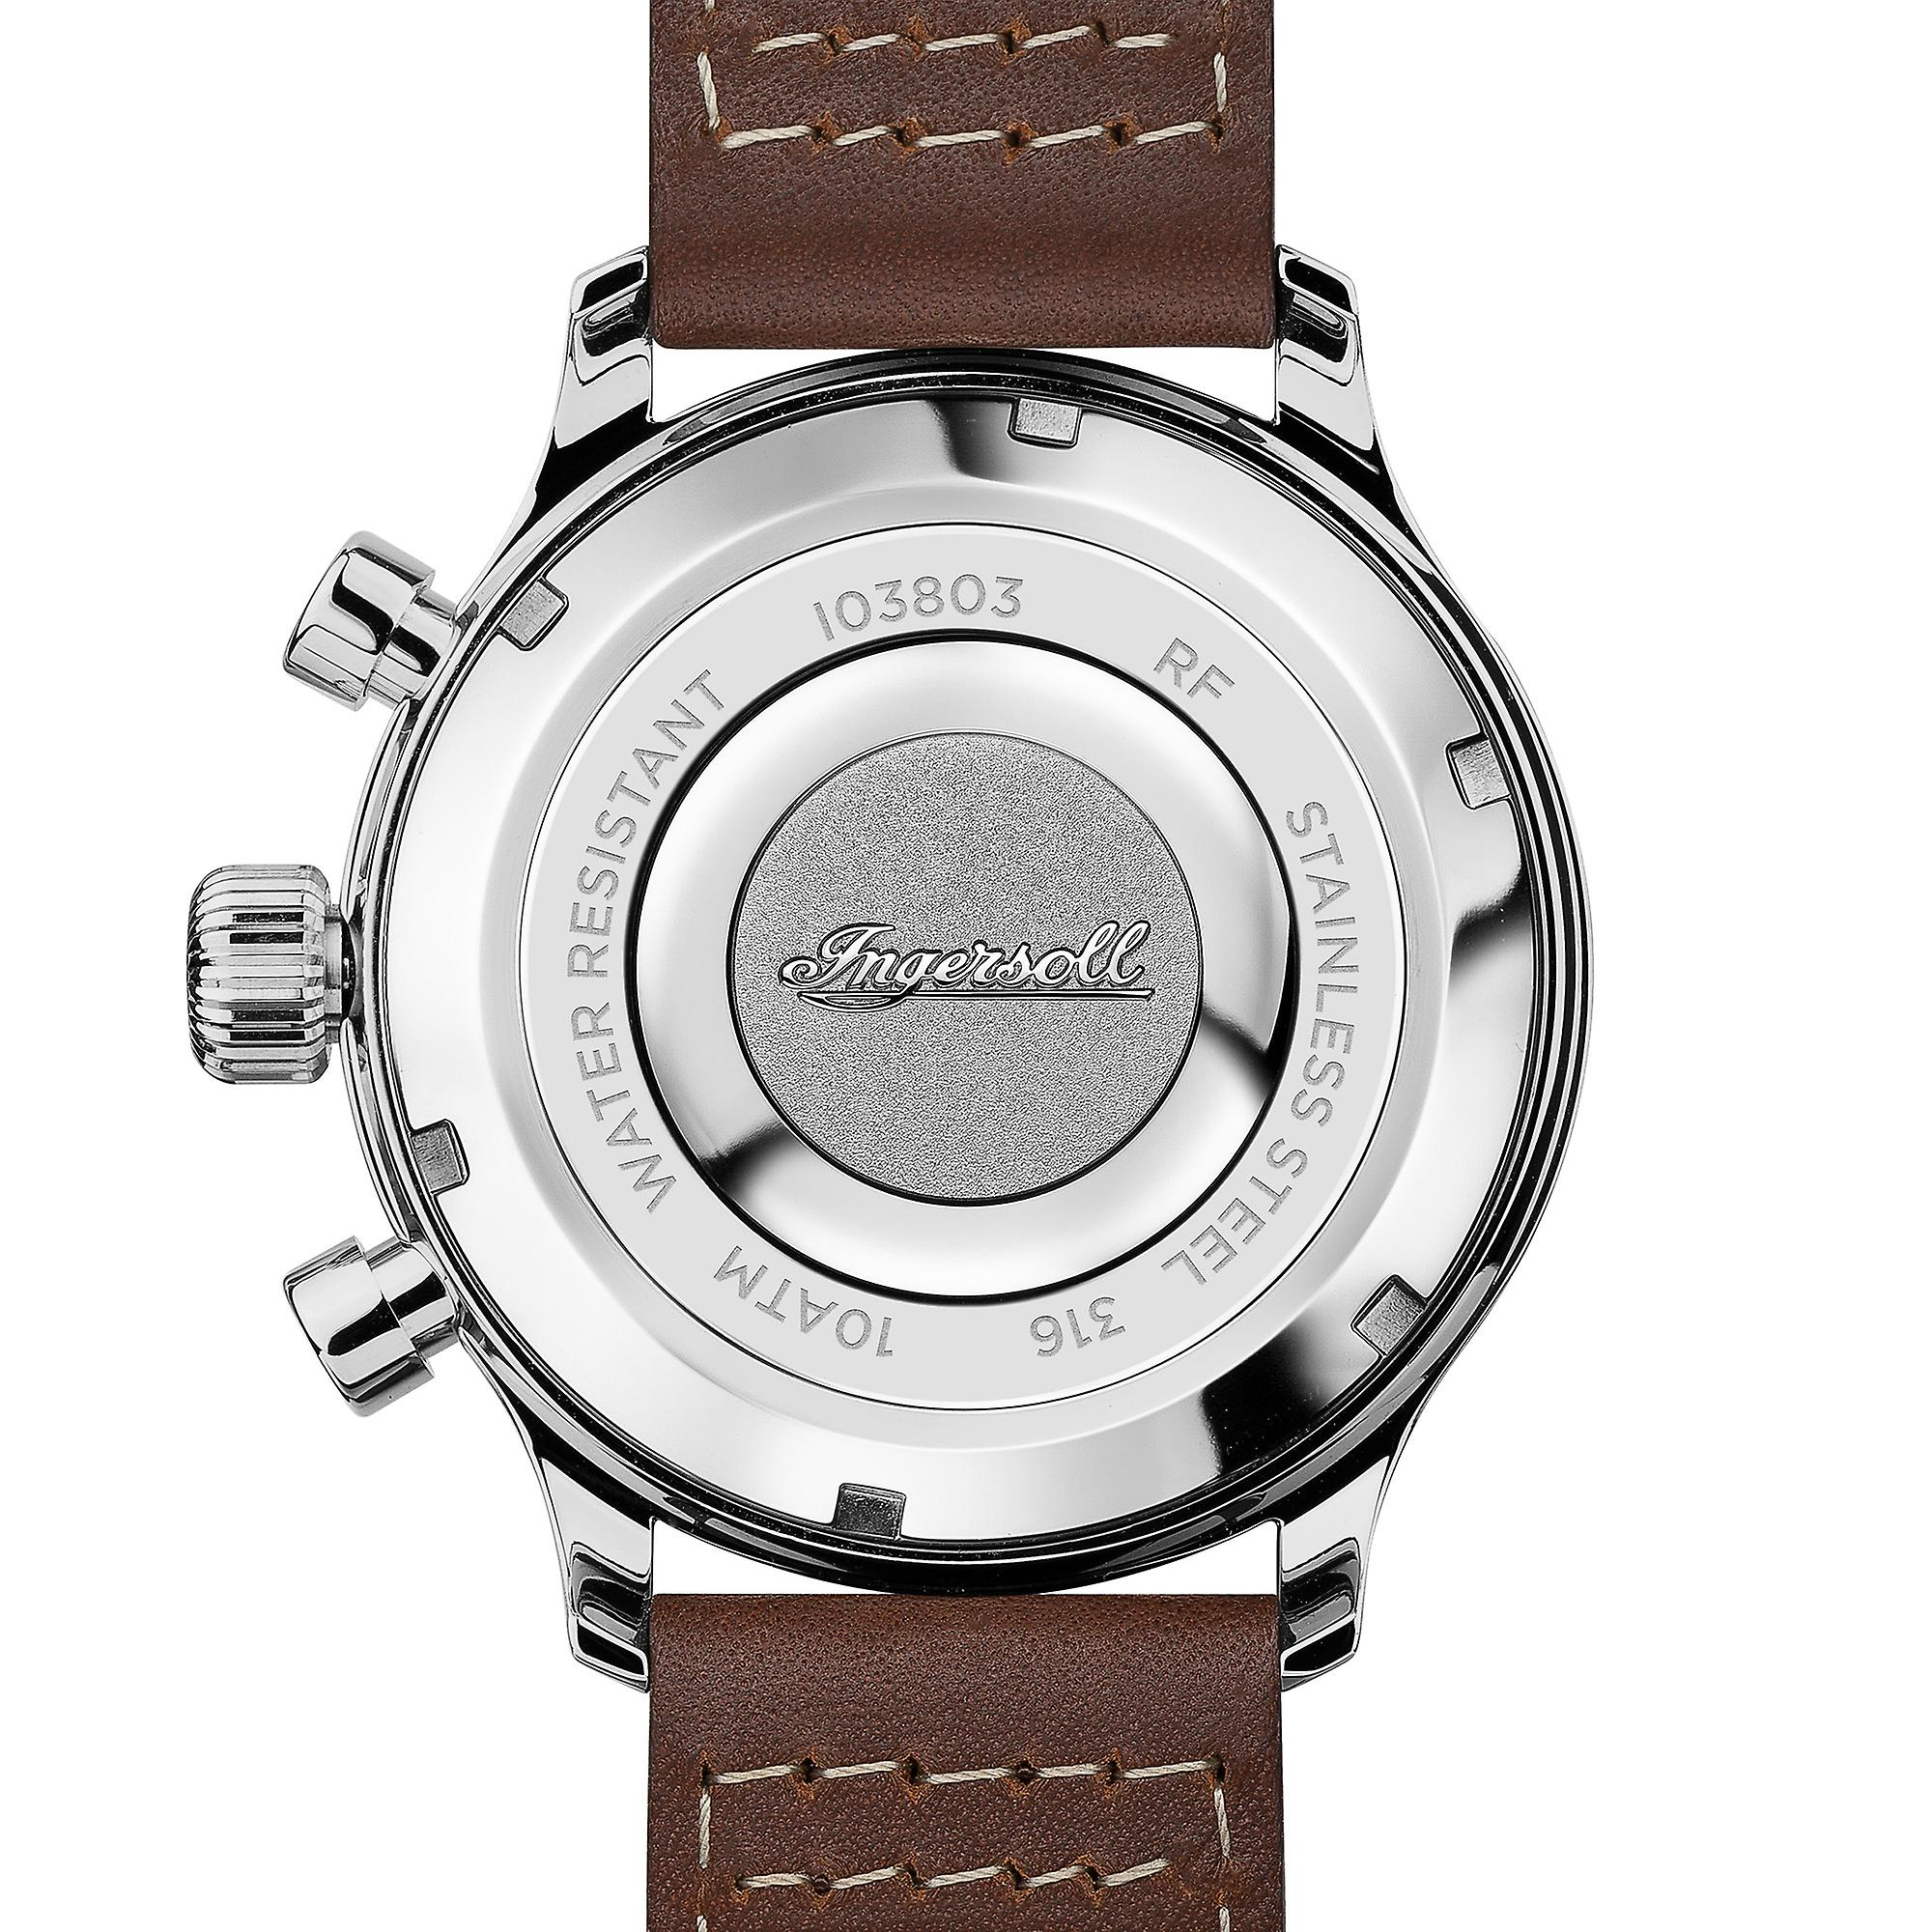 Ingersoll The Apsley Quartz Chronograph Blue Dial Brown Leather Strap Mens Watch I03803 45mm